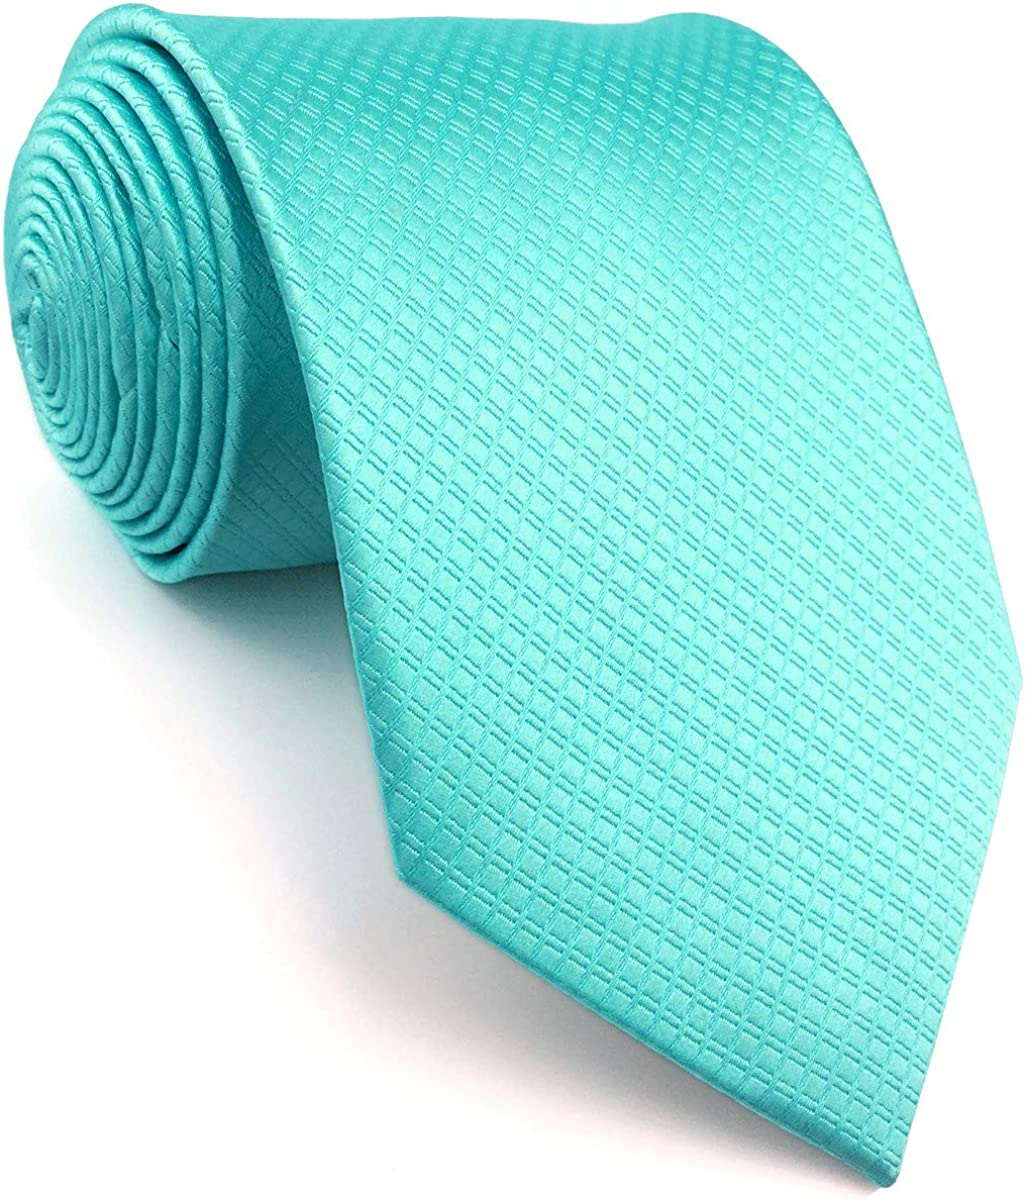 SW SHLAXWING Mens Max 61% OFF Tie Colours Colors Turquoise safety Solid Necktie